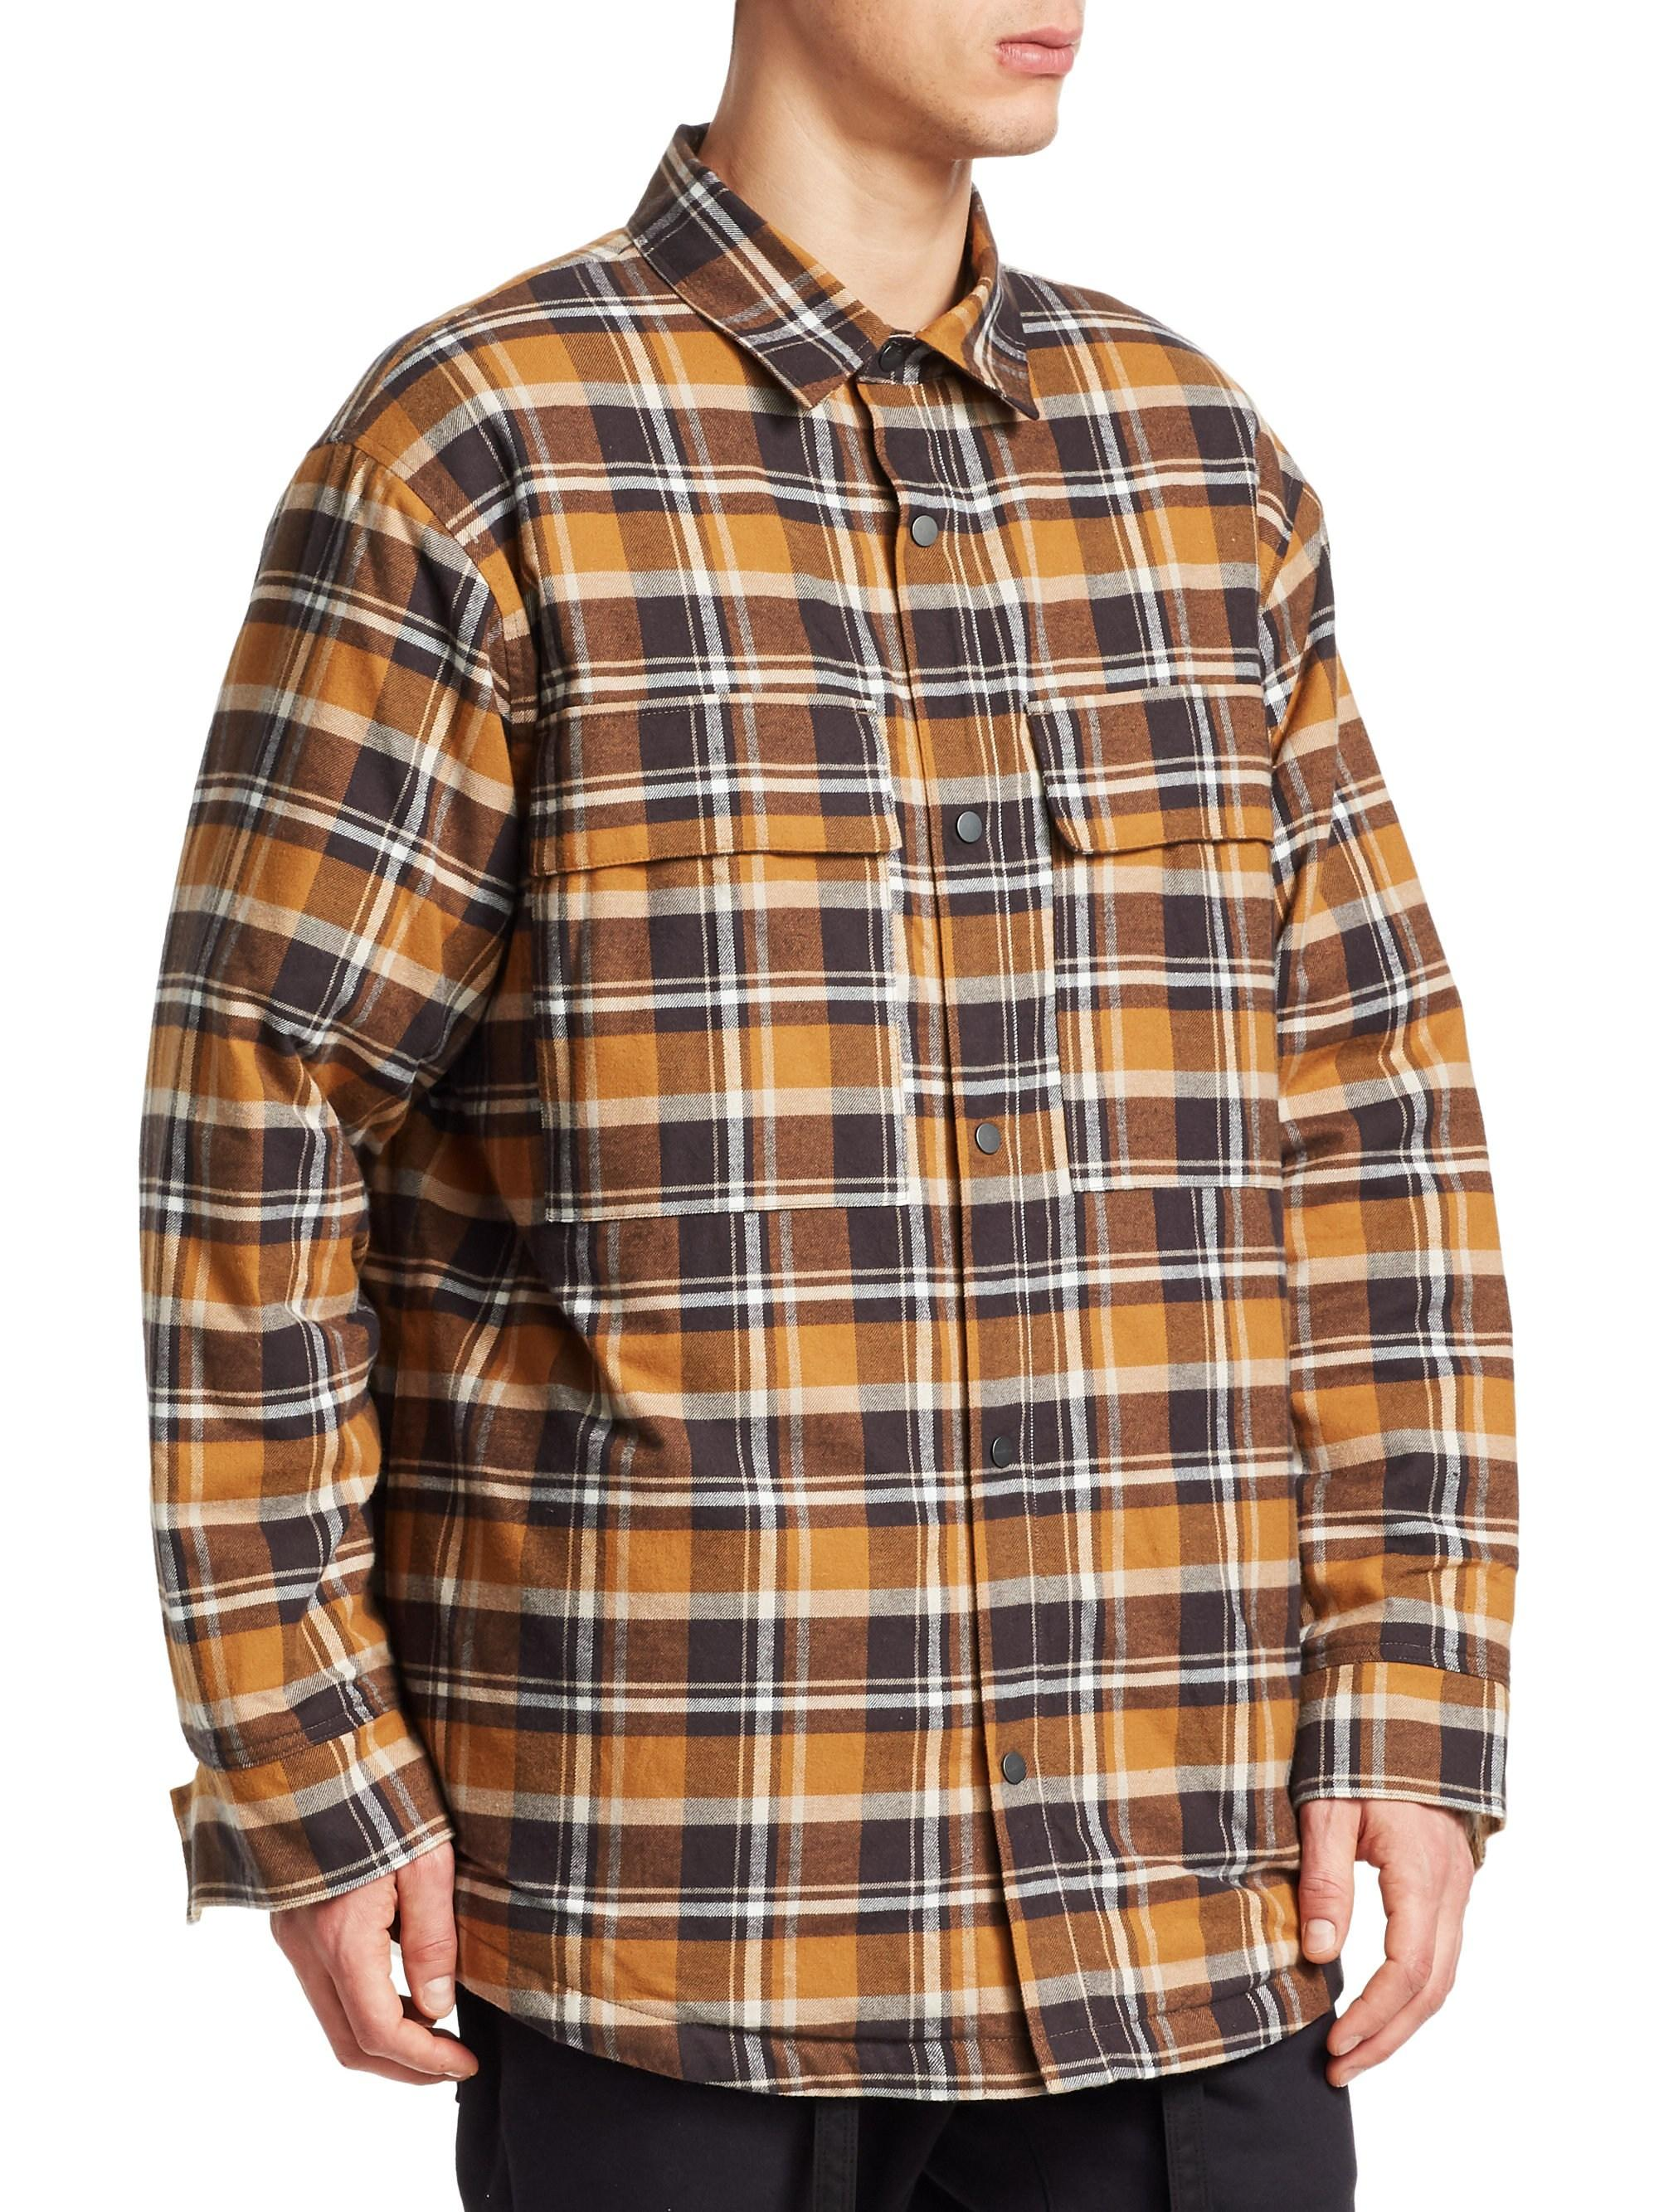 8fe056505b Lyst - Fear Of God Men s Flannet Shirt Jacket - Brown Plaid - Size Small in  Brown for Men